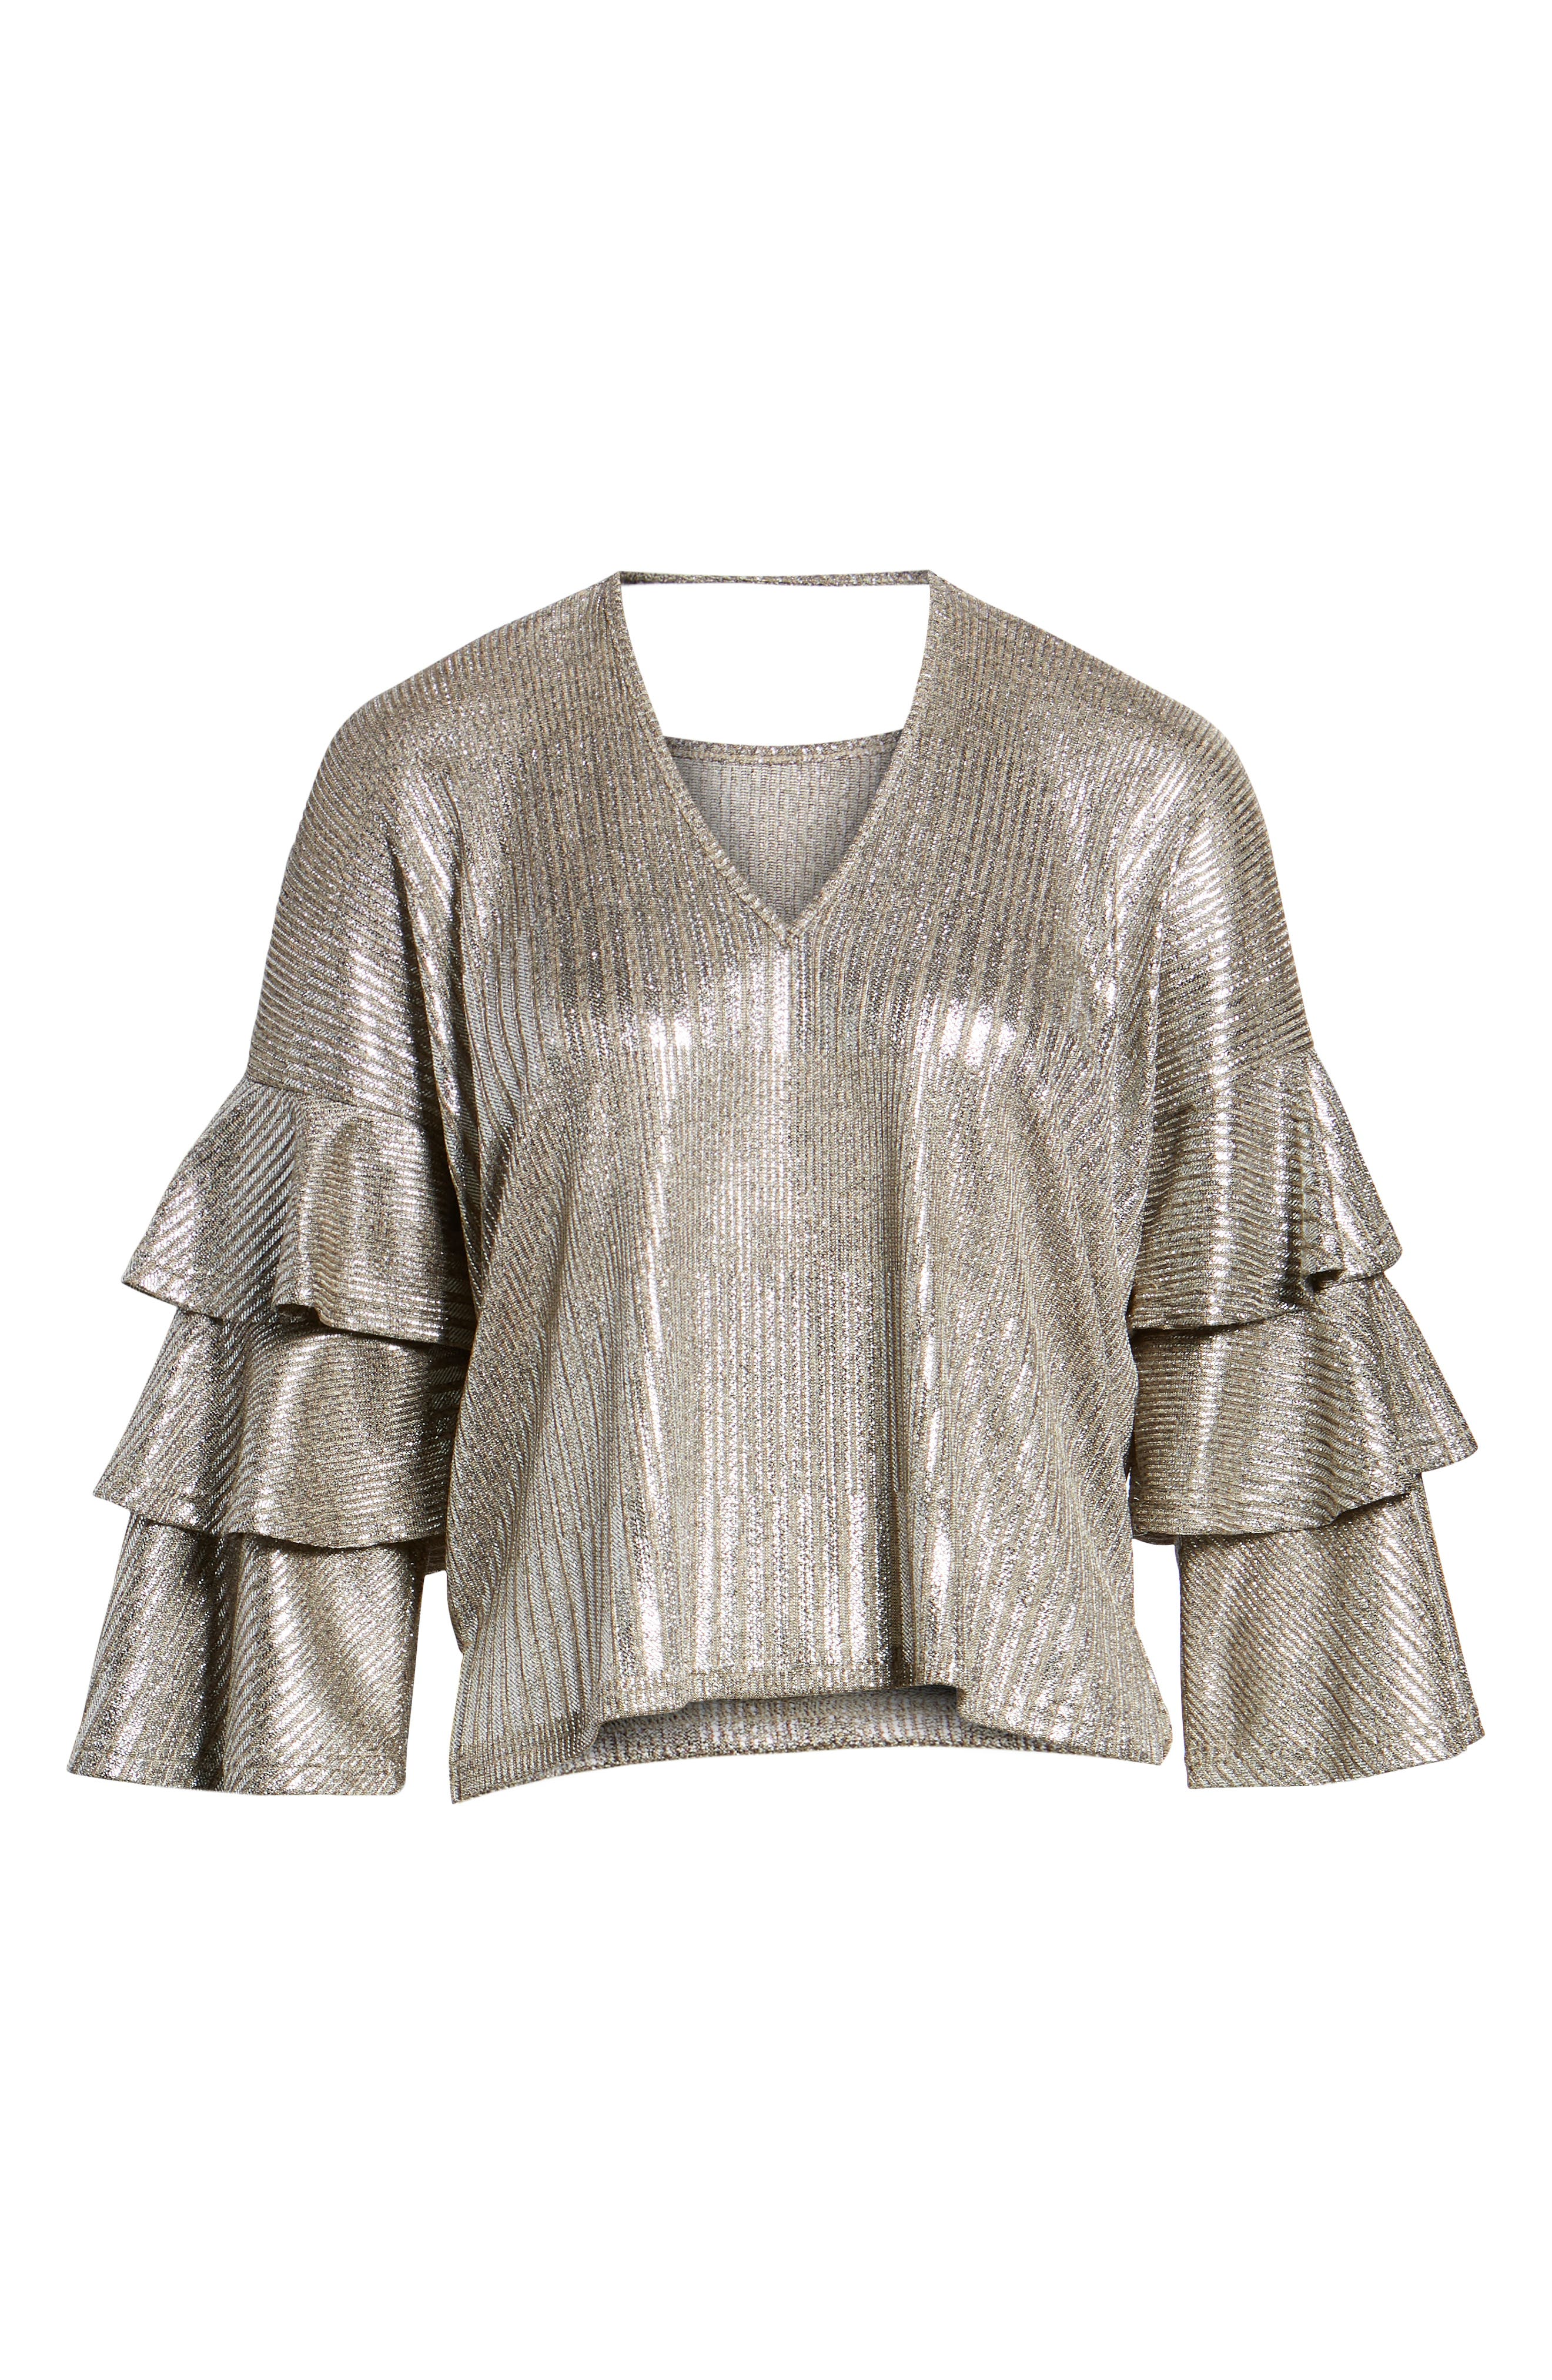 Metallic Tiered Ruffle Sleeve Top,                             Alternate thumbnail 6, color,                             METALLIC